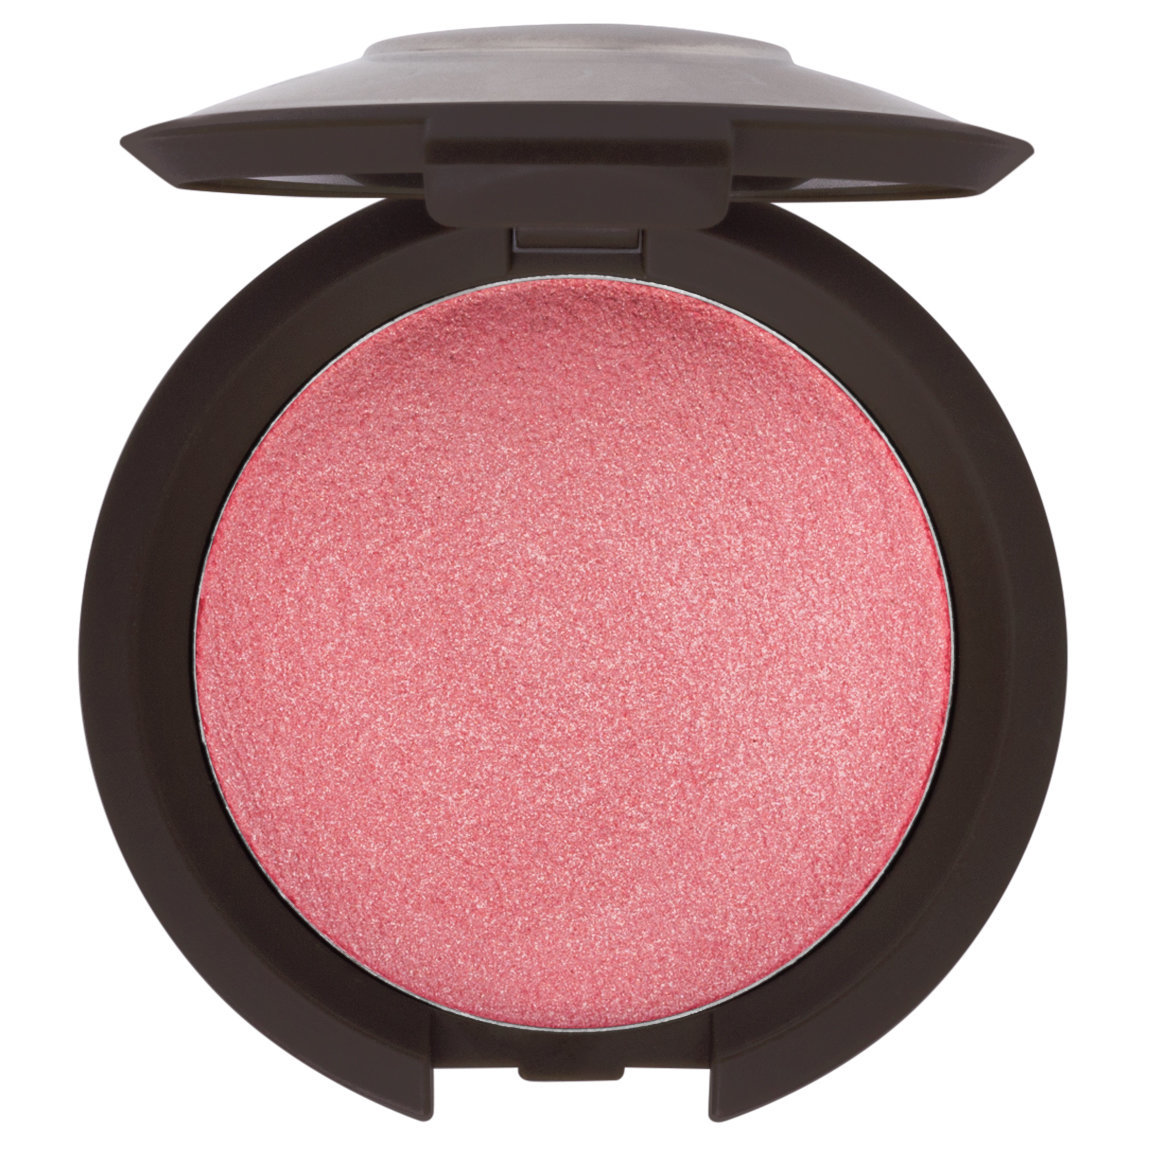 BECCA Luminous Blush Camellia product swatch.